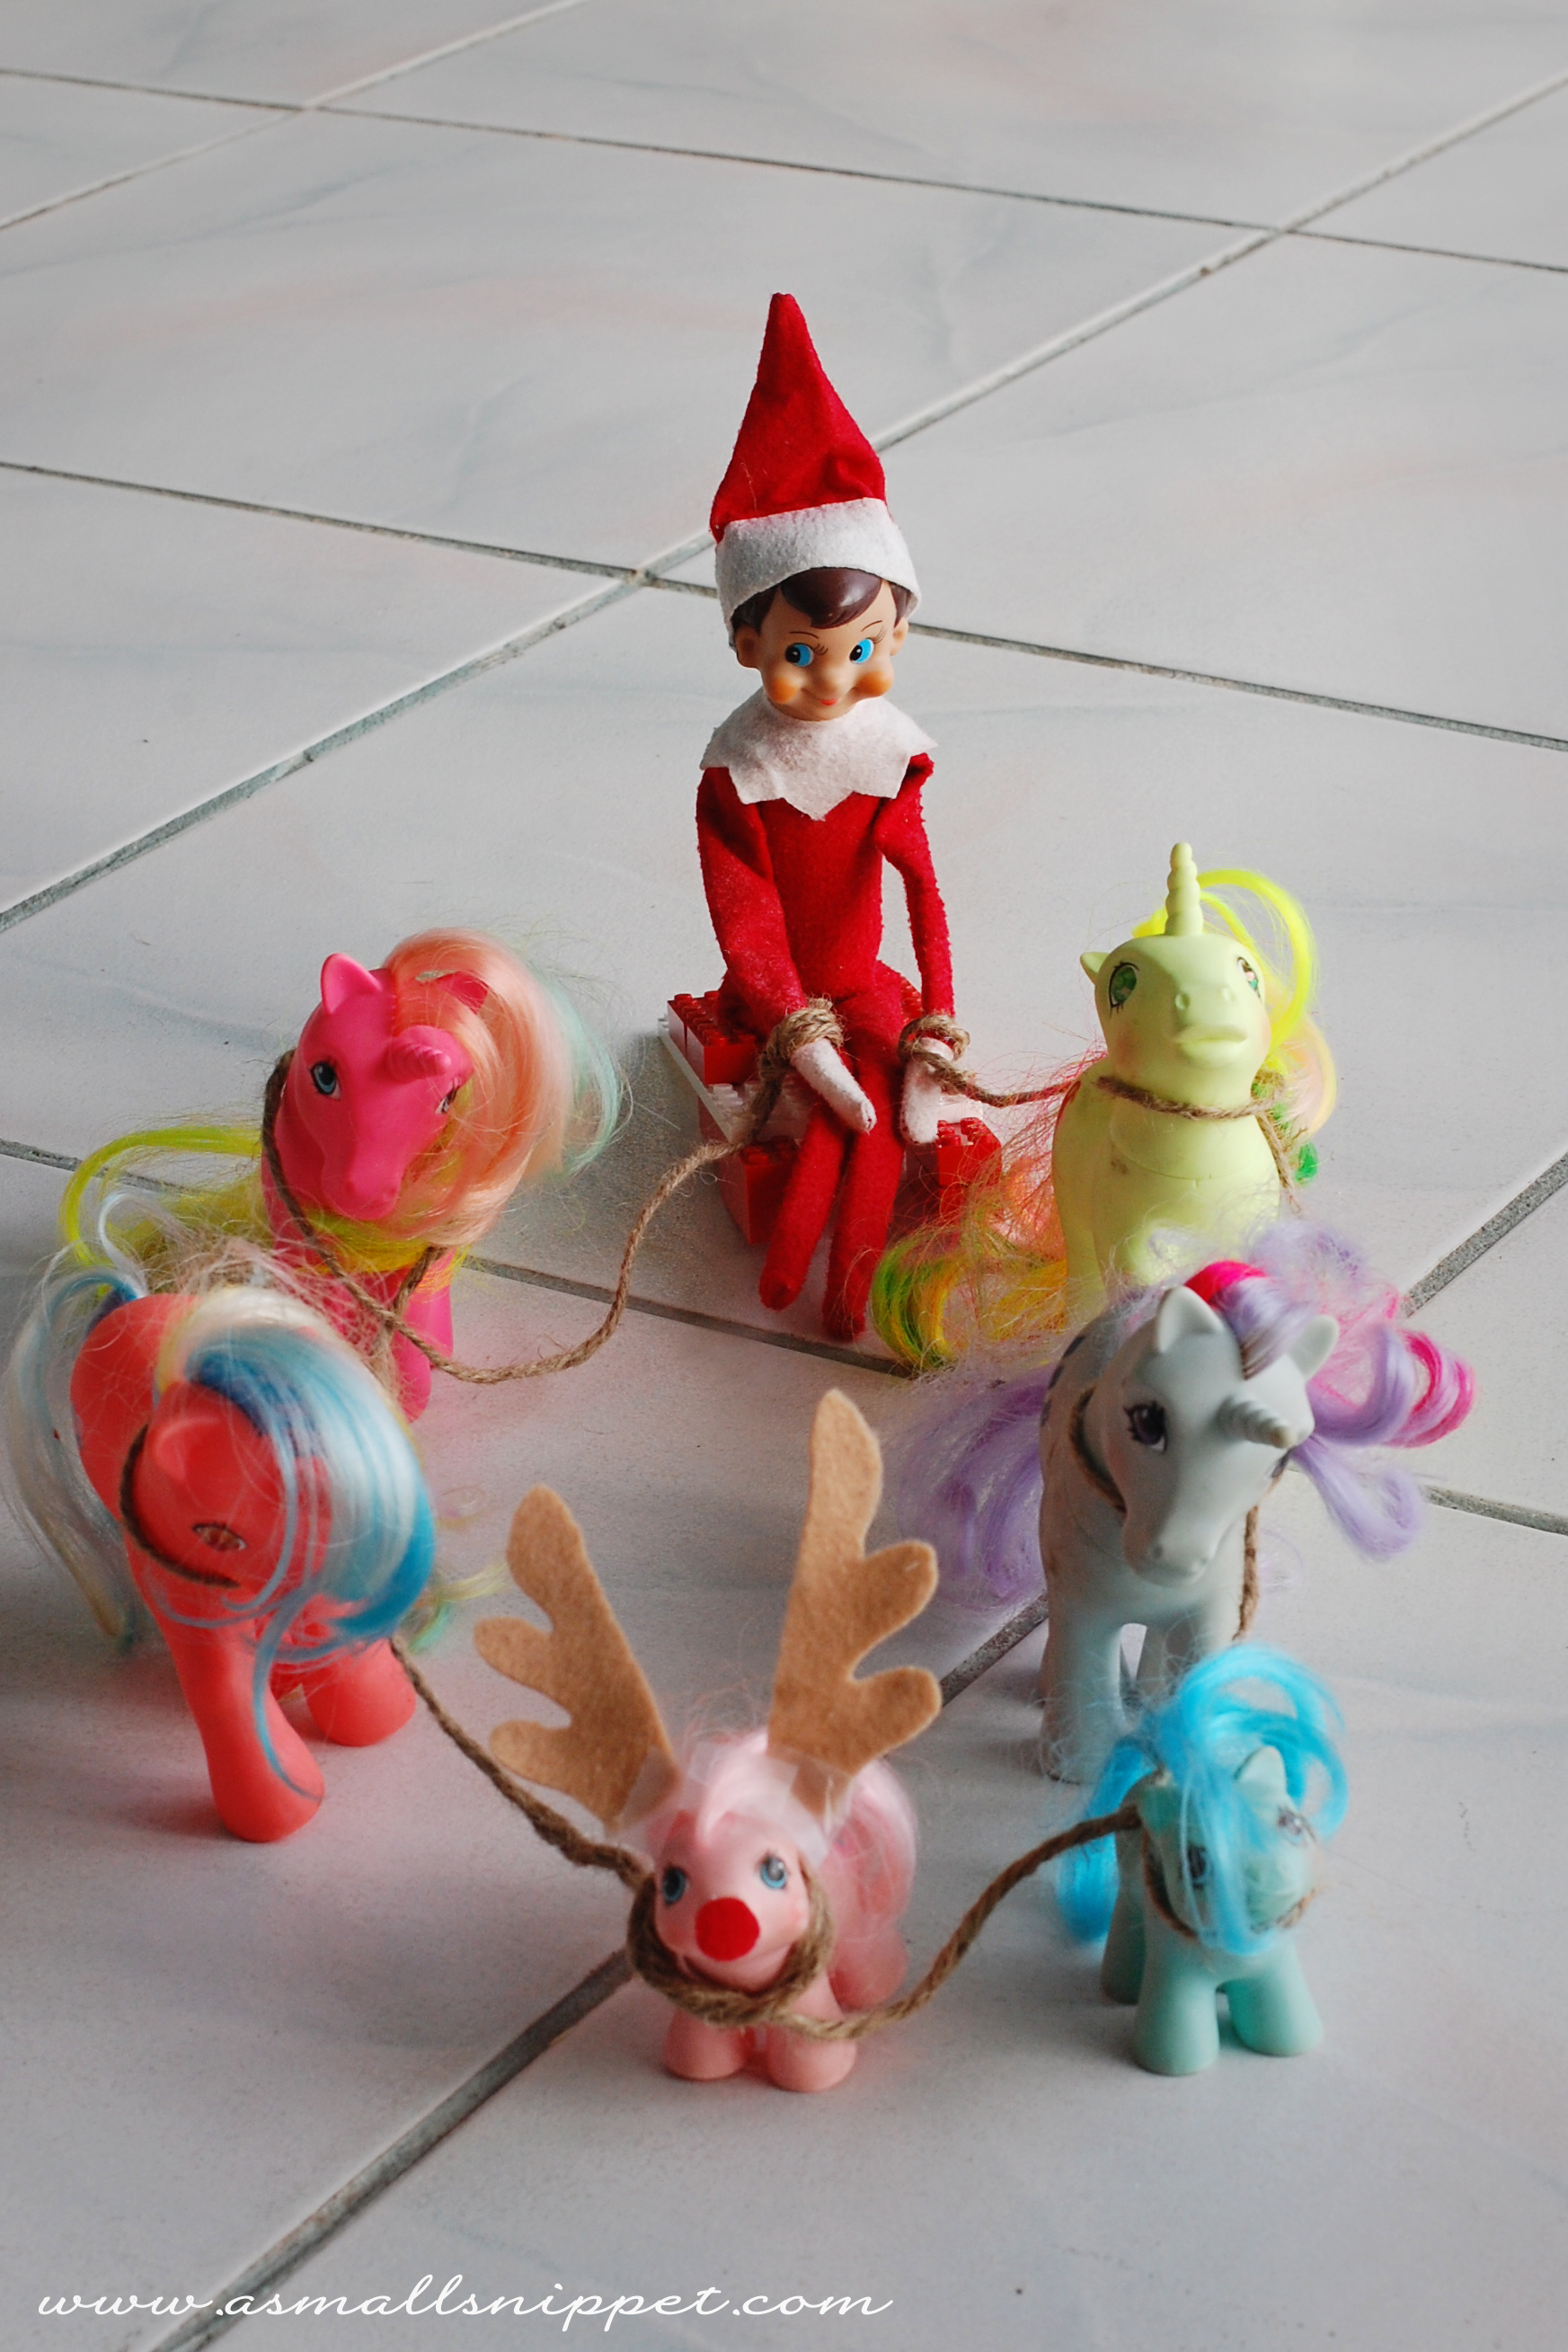 1000 images about elf on the shelf on pinterest elves for Elf on the shelf pooping on cookies